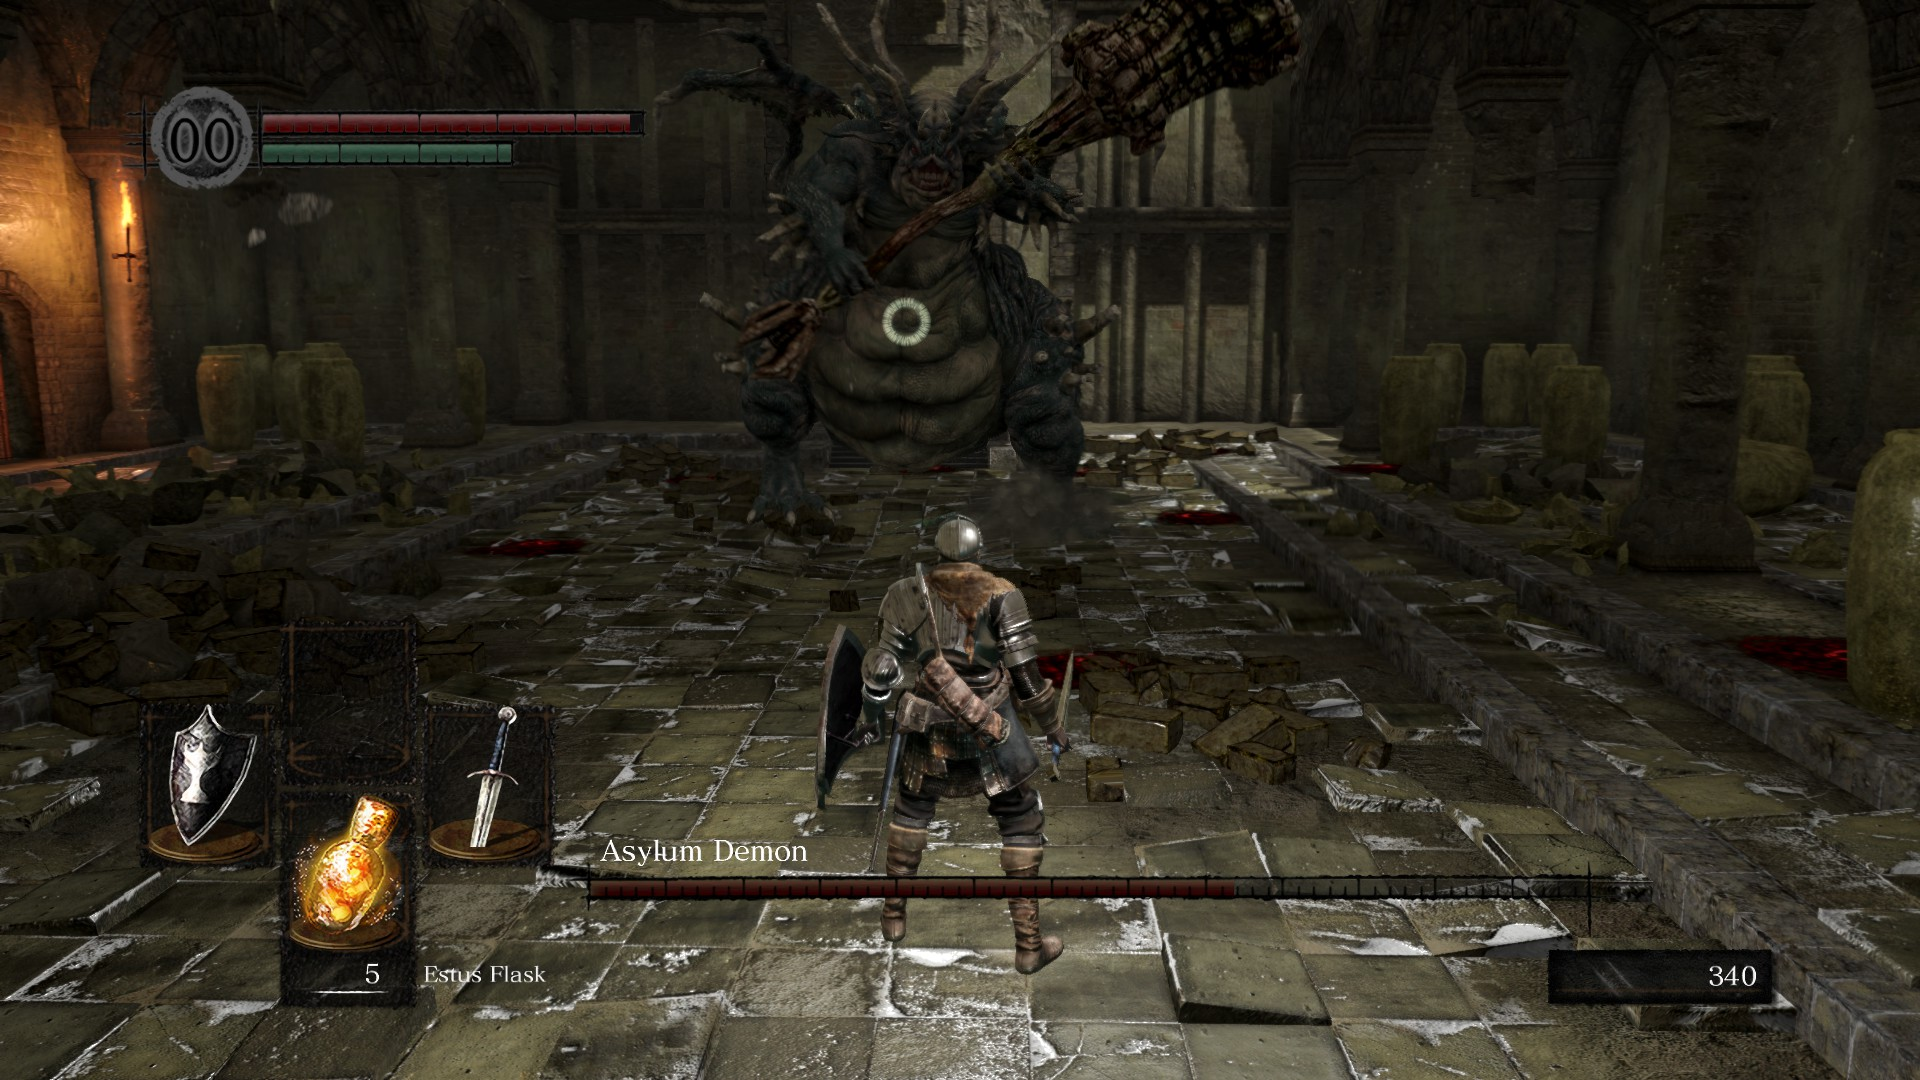 Dark Souls Parry Guide - How to Parry in Dark Souls